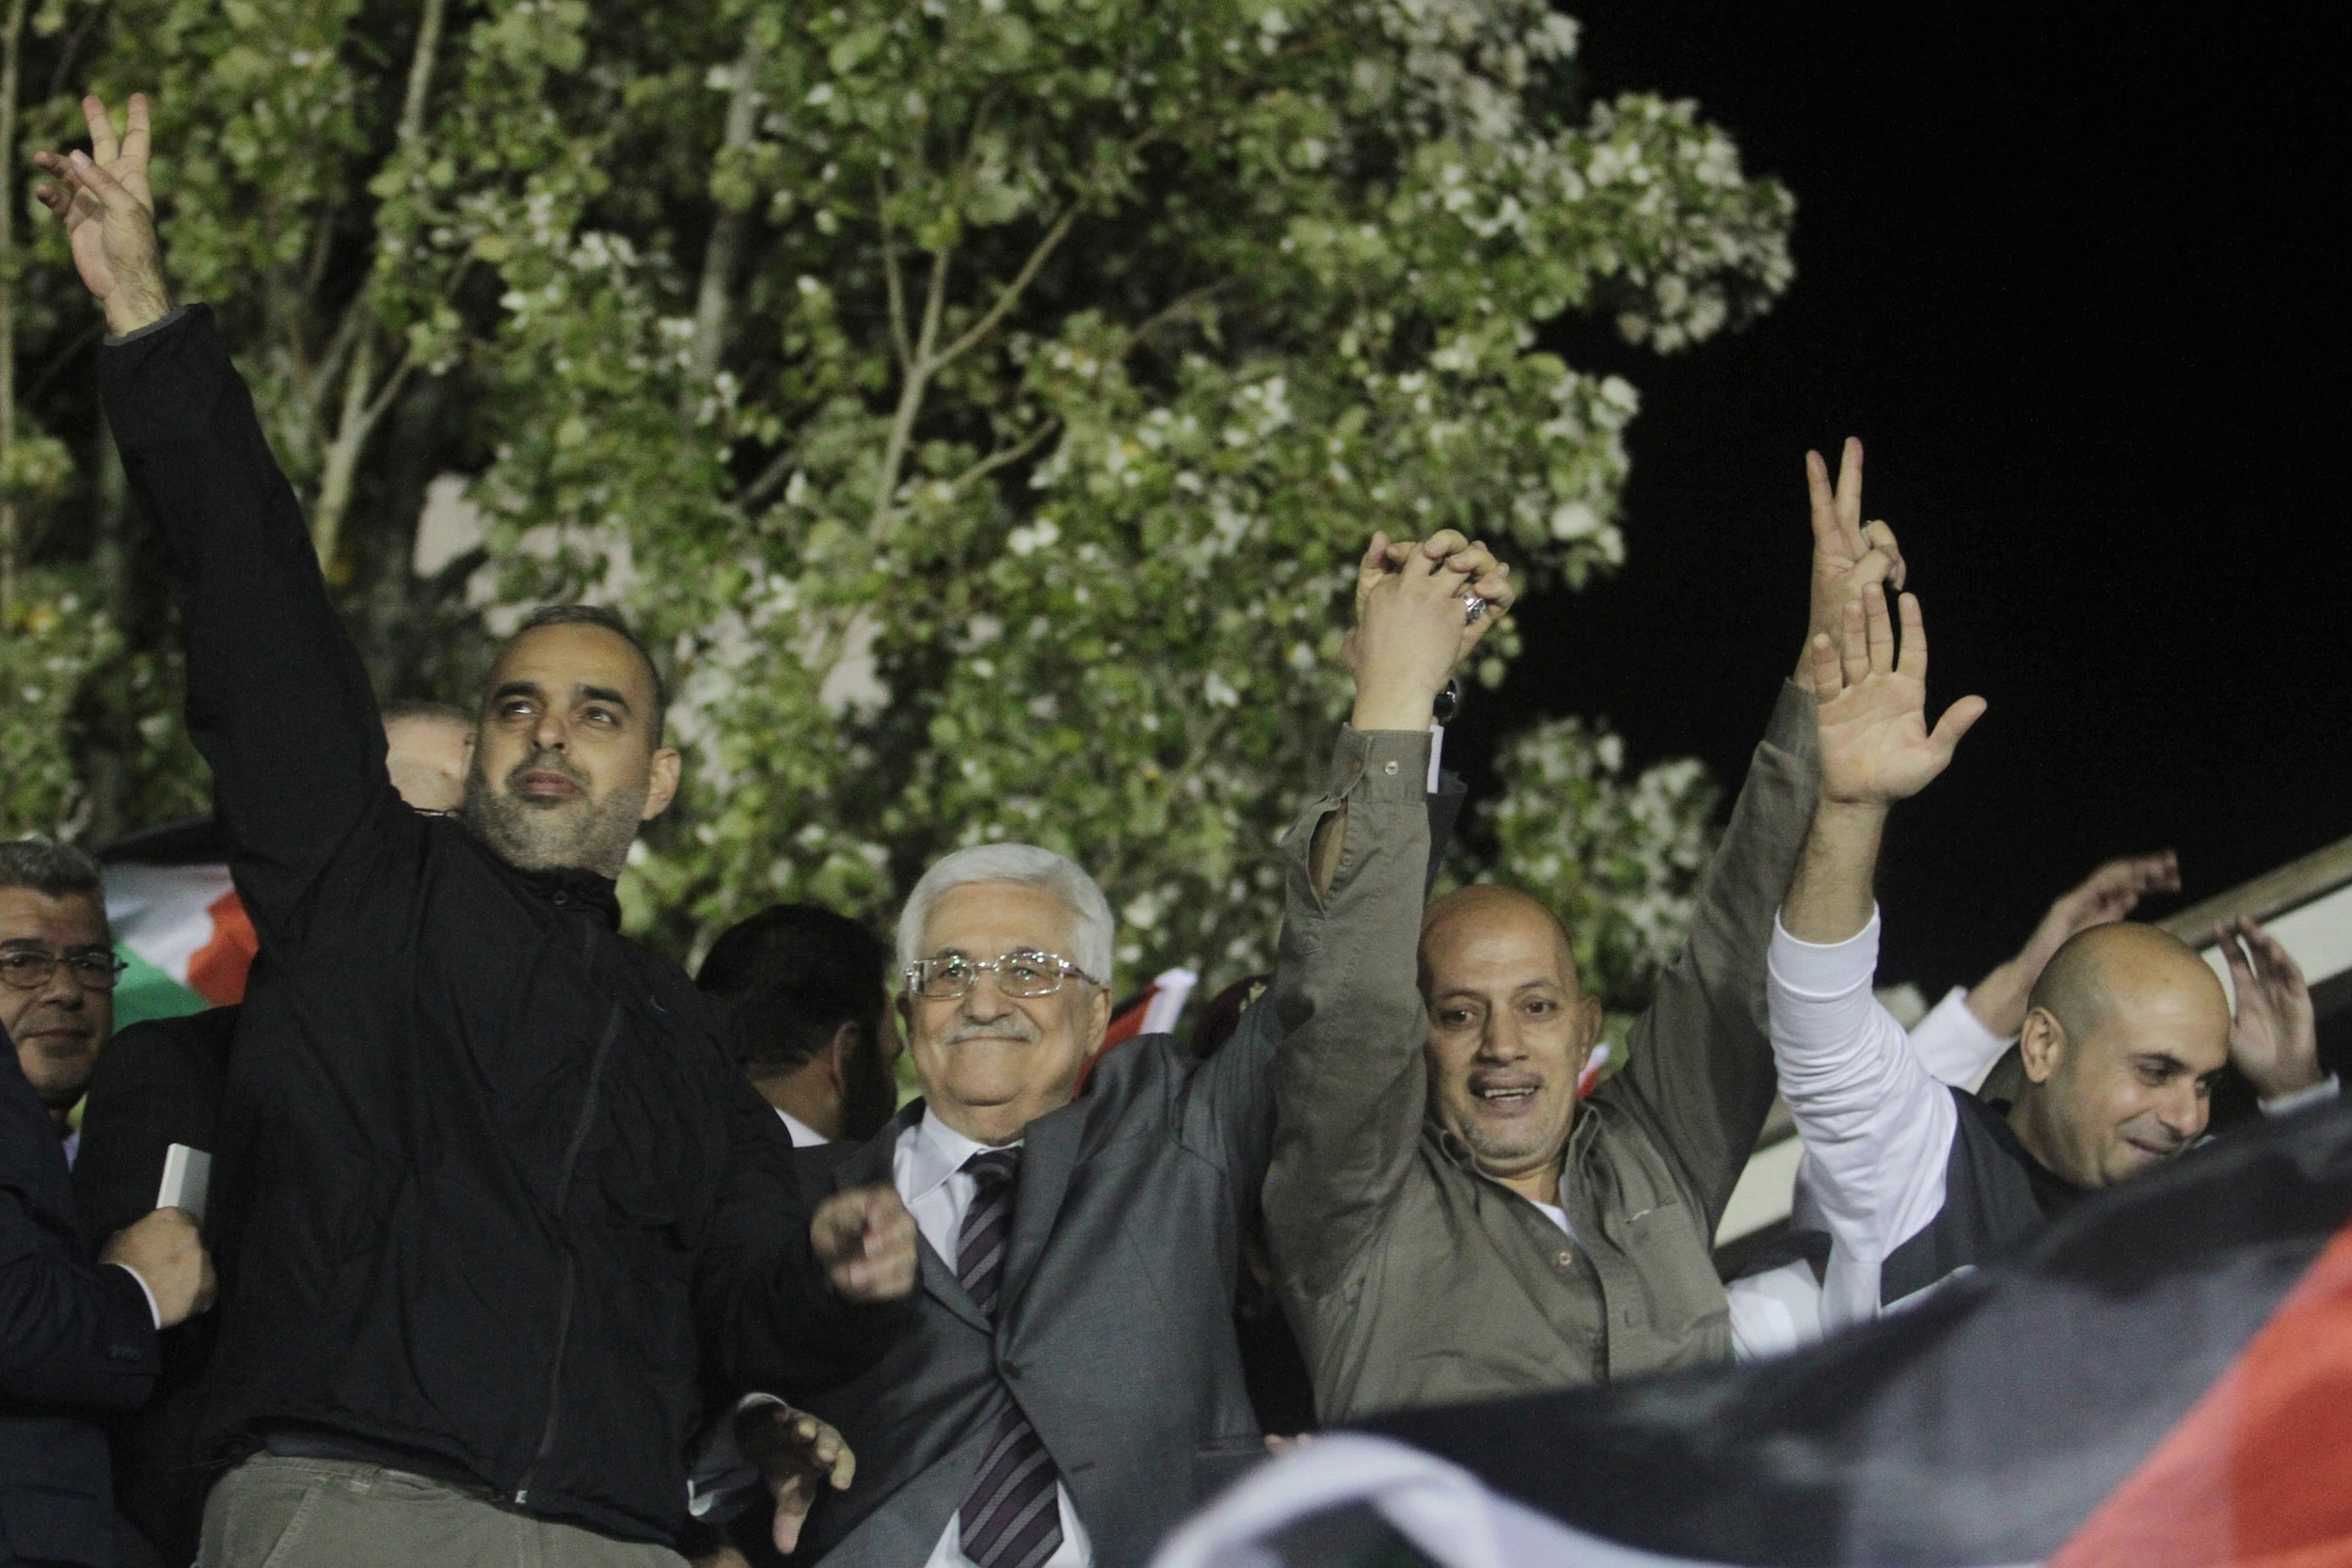 """Click photo to download. Caption: Palestinian Authority President Mahmoud Abbas (second from left) waves with released Palestinian prisoners coming from Israeli jails during celebrations at Abbas's headquarters in Ramallah, October 30, 2013. Abbas at the celebration called freed terrorist prisoners """"heroes,"""" Palestinian Media Watch reported at the time. Credit: Issam Rimawi/FLASH90."""